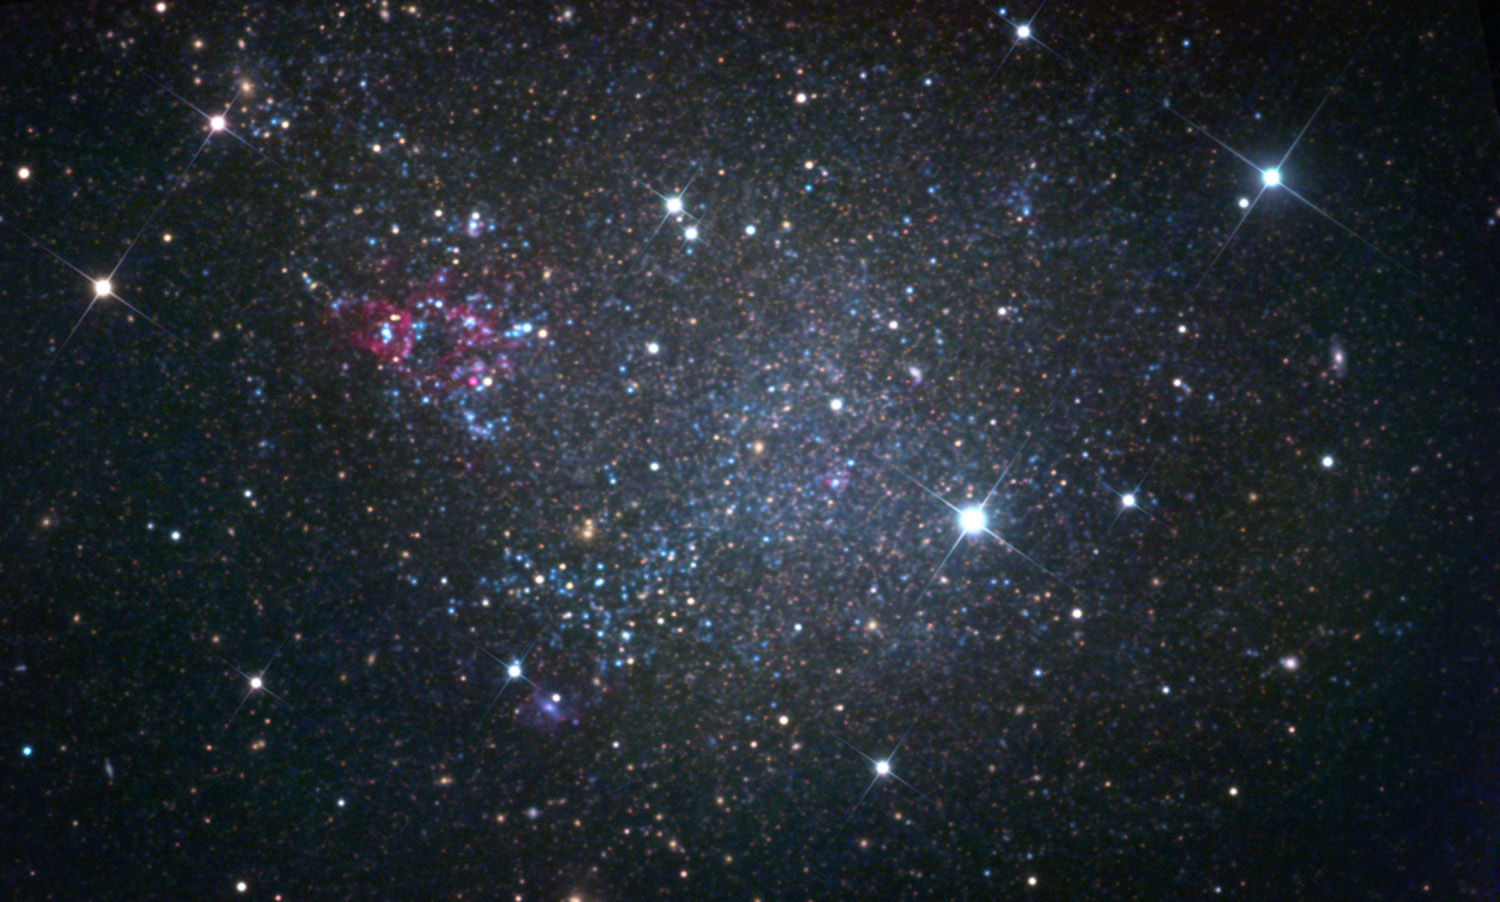 sagittarius dwarf galaxy nasa - photo #1